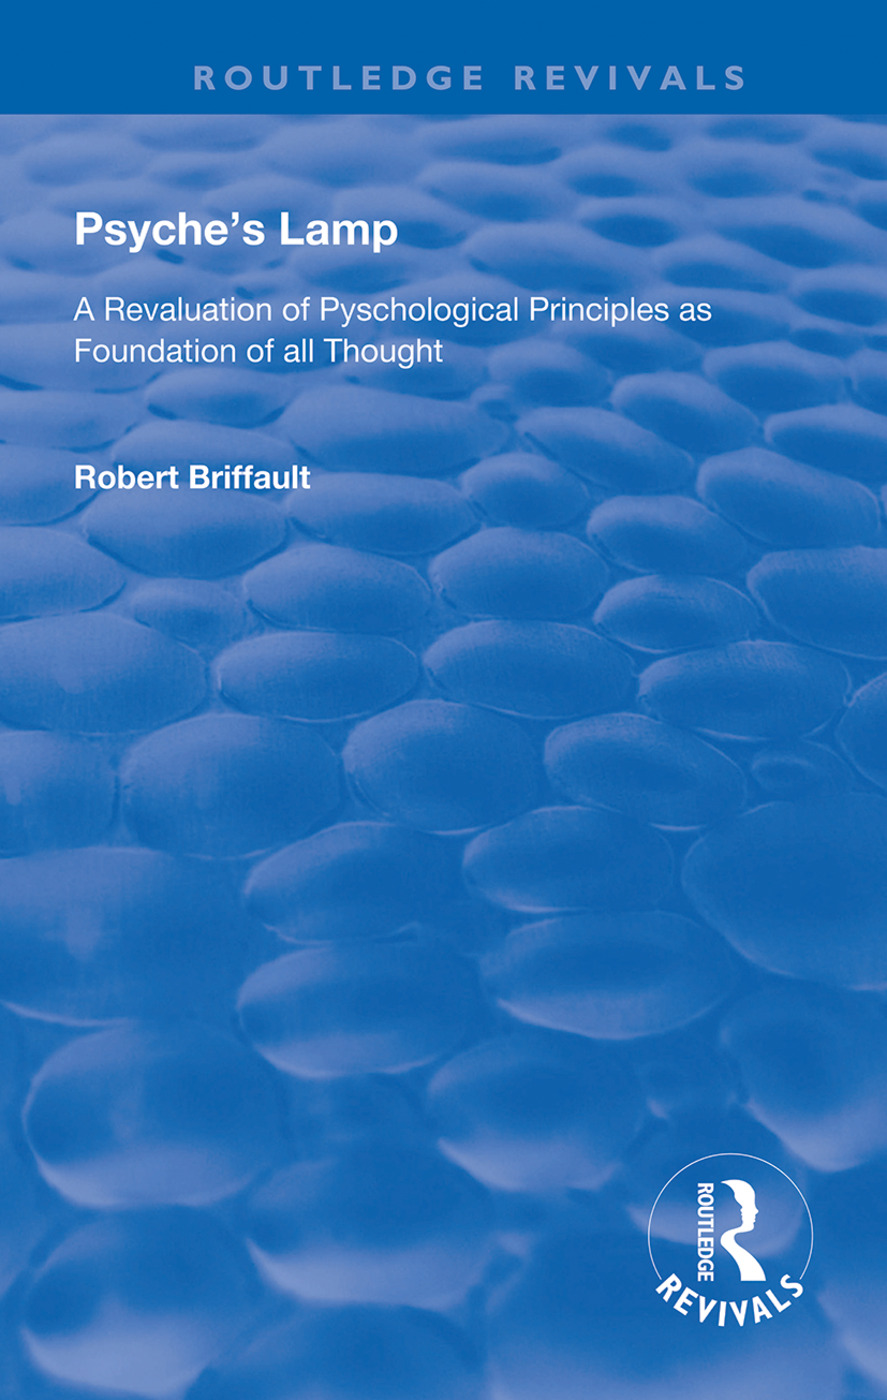 Psyche's Lamp: A Revaluation of Pyschological Principles as Foundation of All Thought book cover